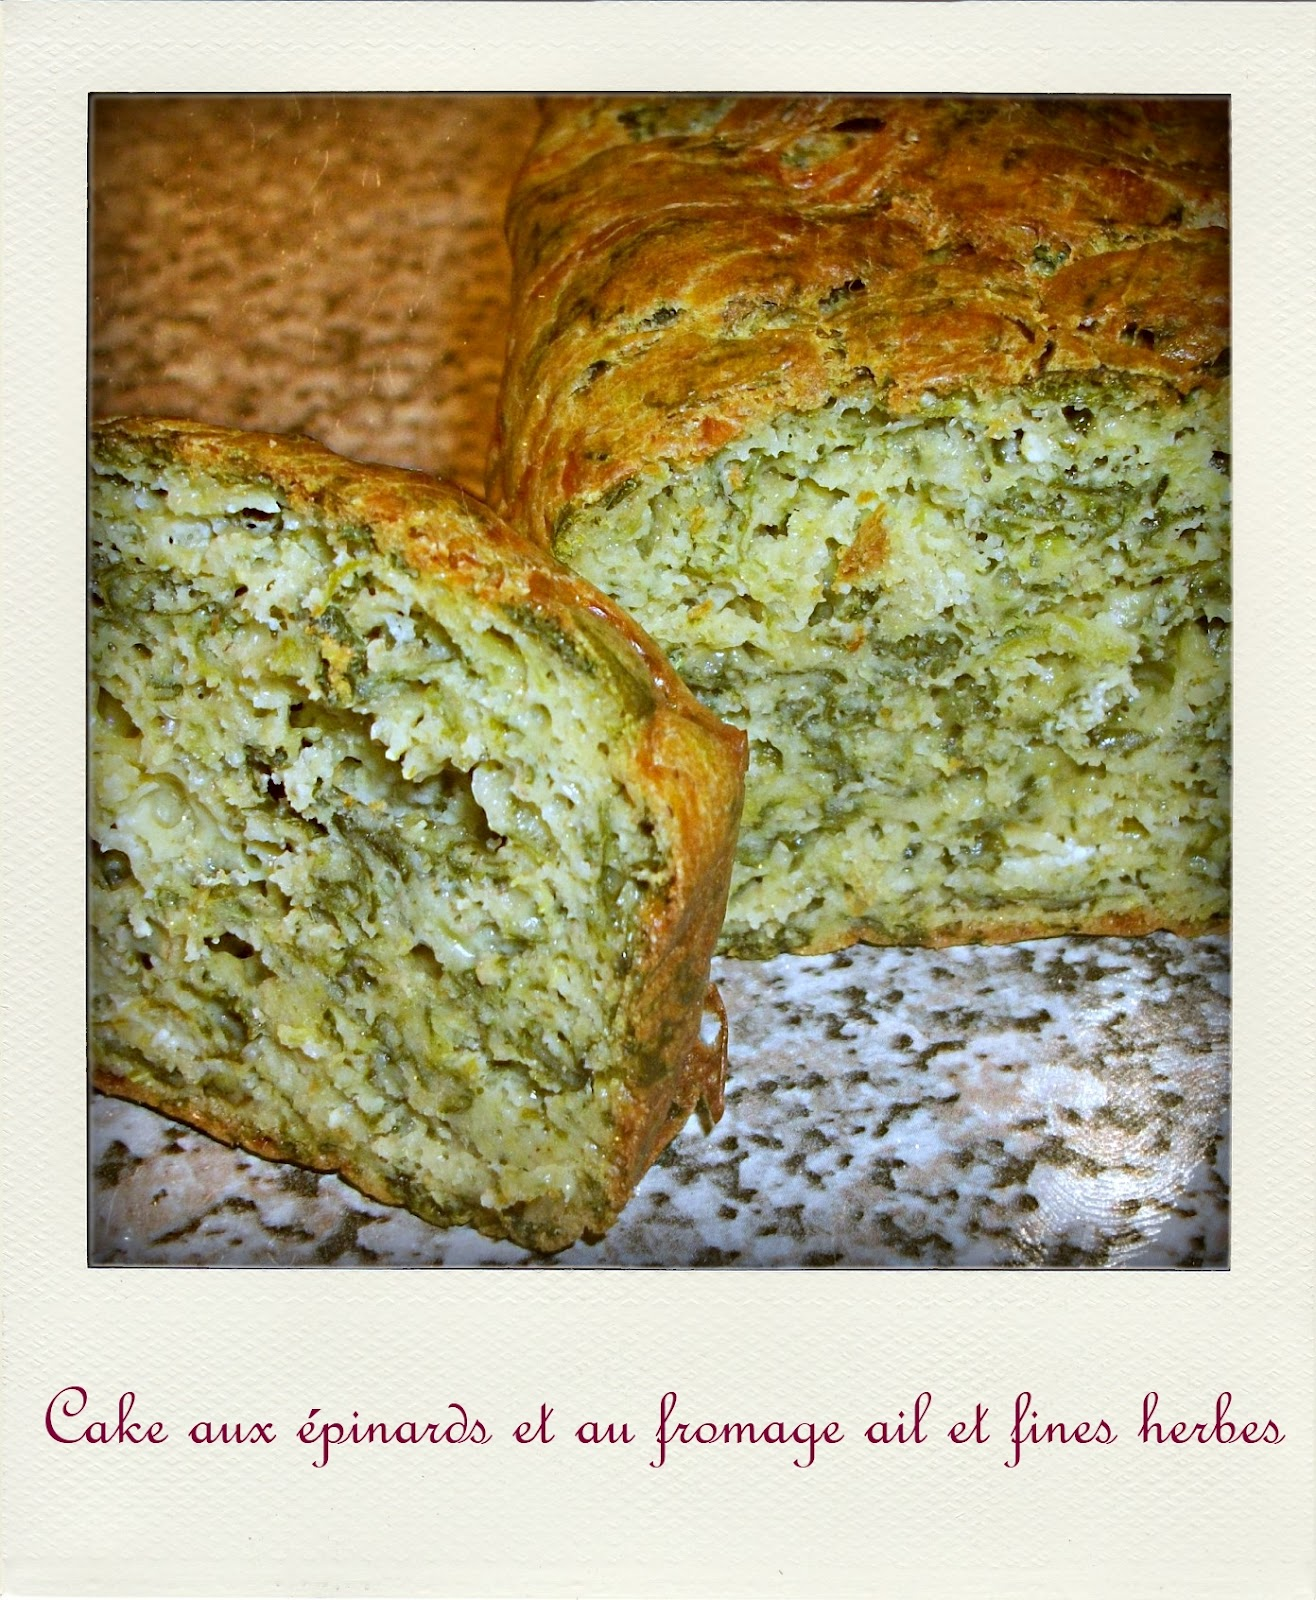 Cake Sale Ail Fines Herbes